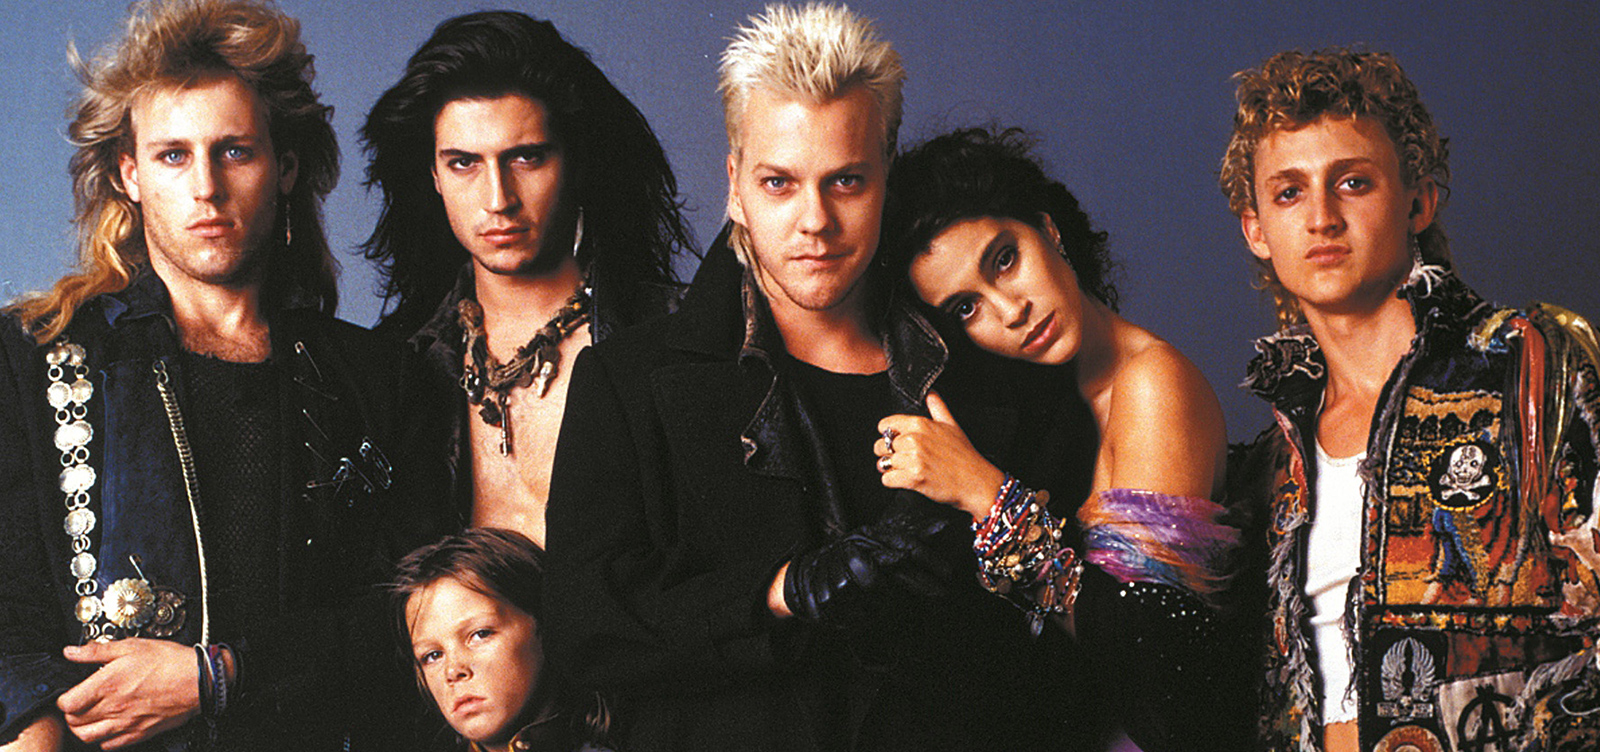 Lost_Boys_Review_Images_V02